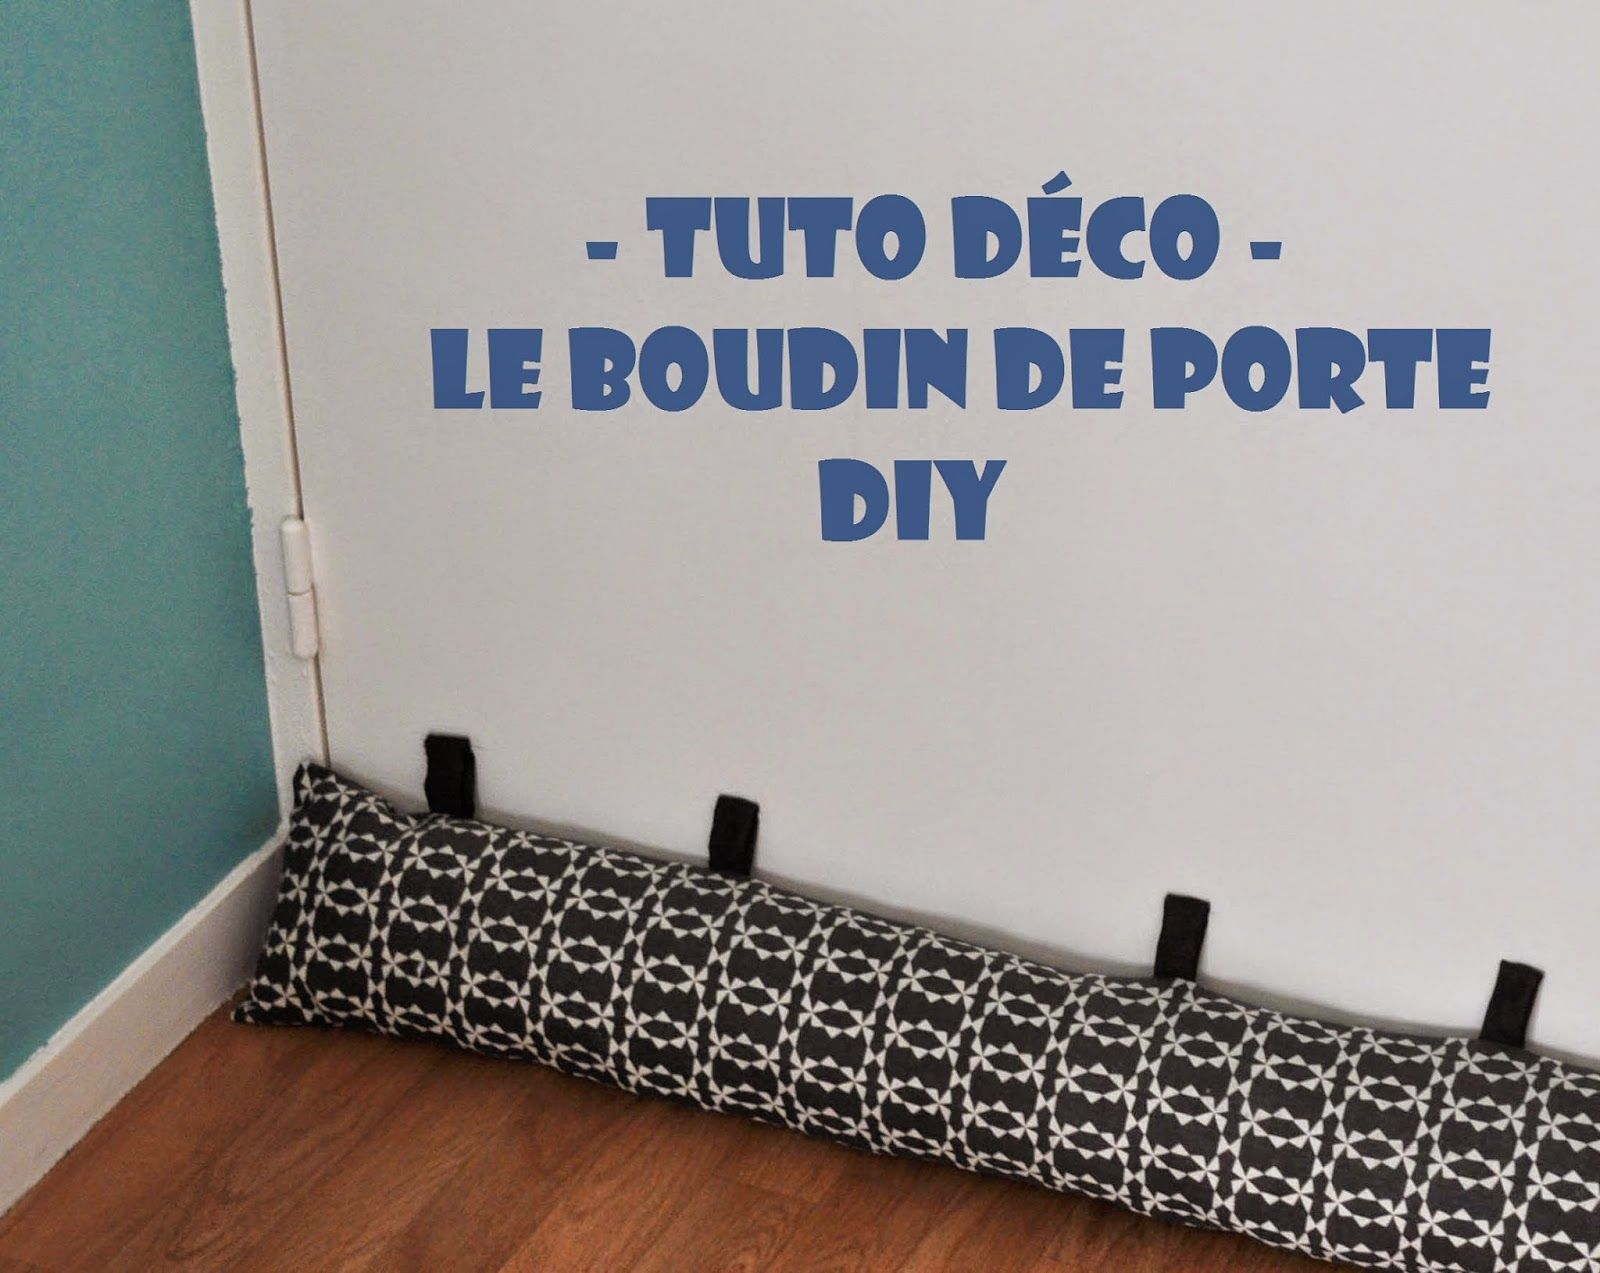 Funky sunday halte aux courants d 39 air le boudin de porte diy couture diy d co maison - Cale porte ikea ...